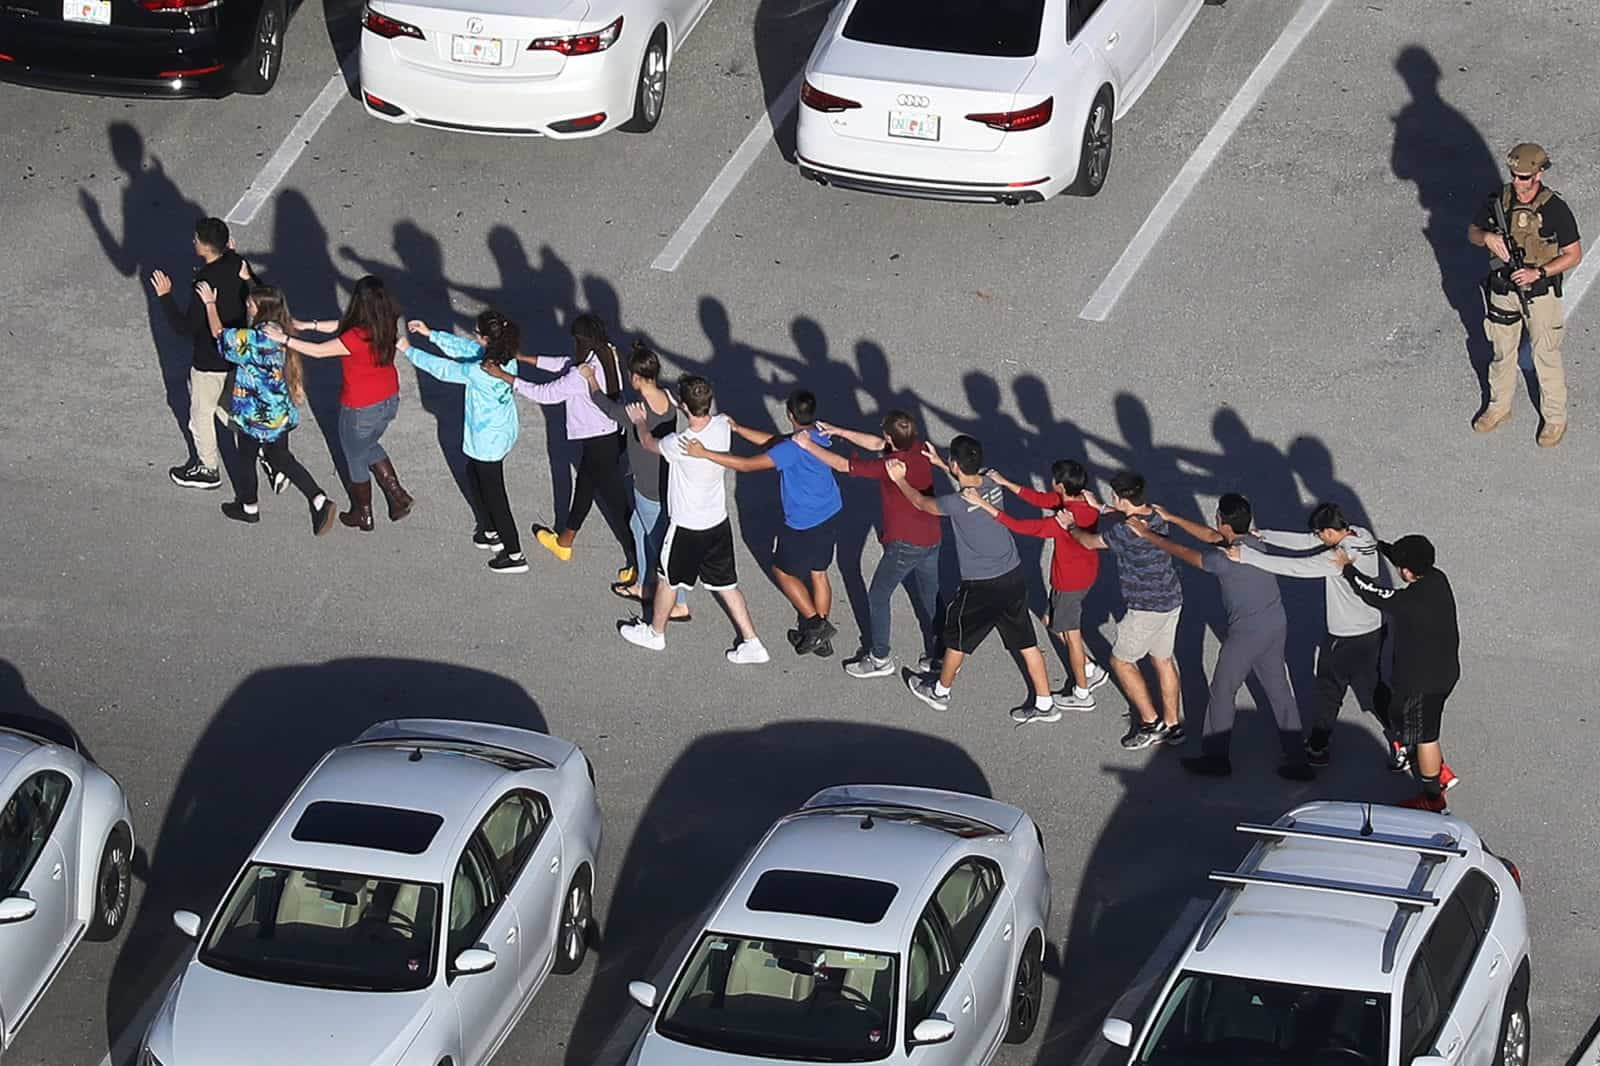 kids lining up in parking lot after shooting